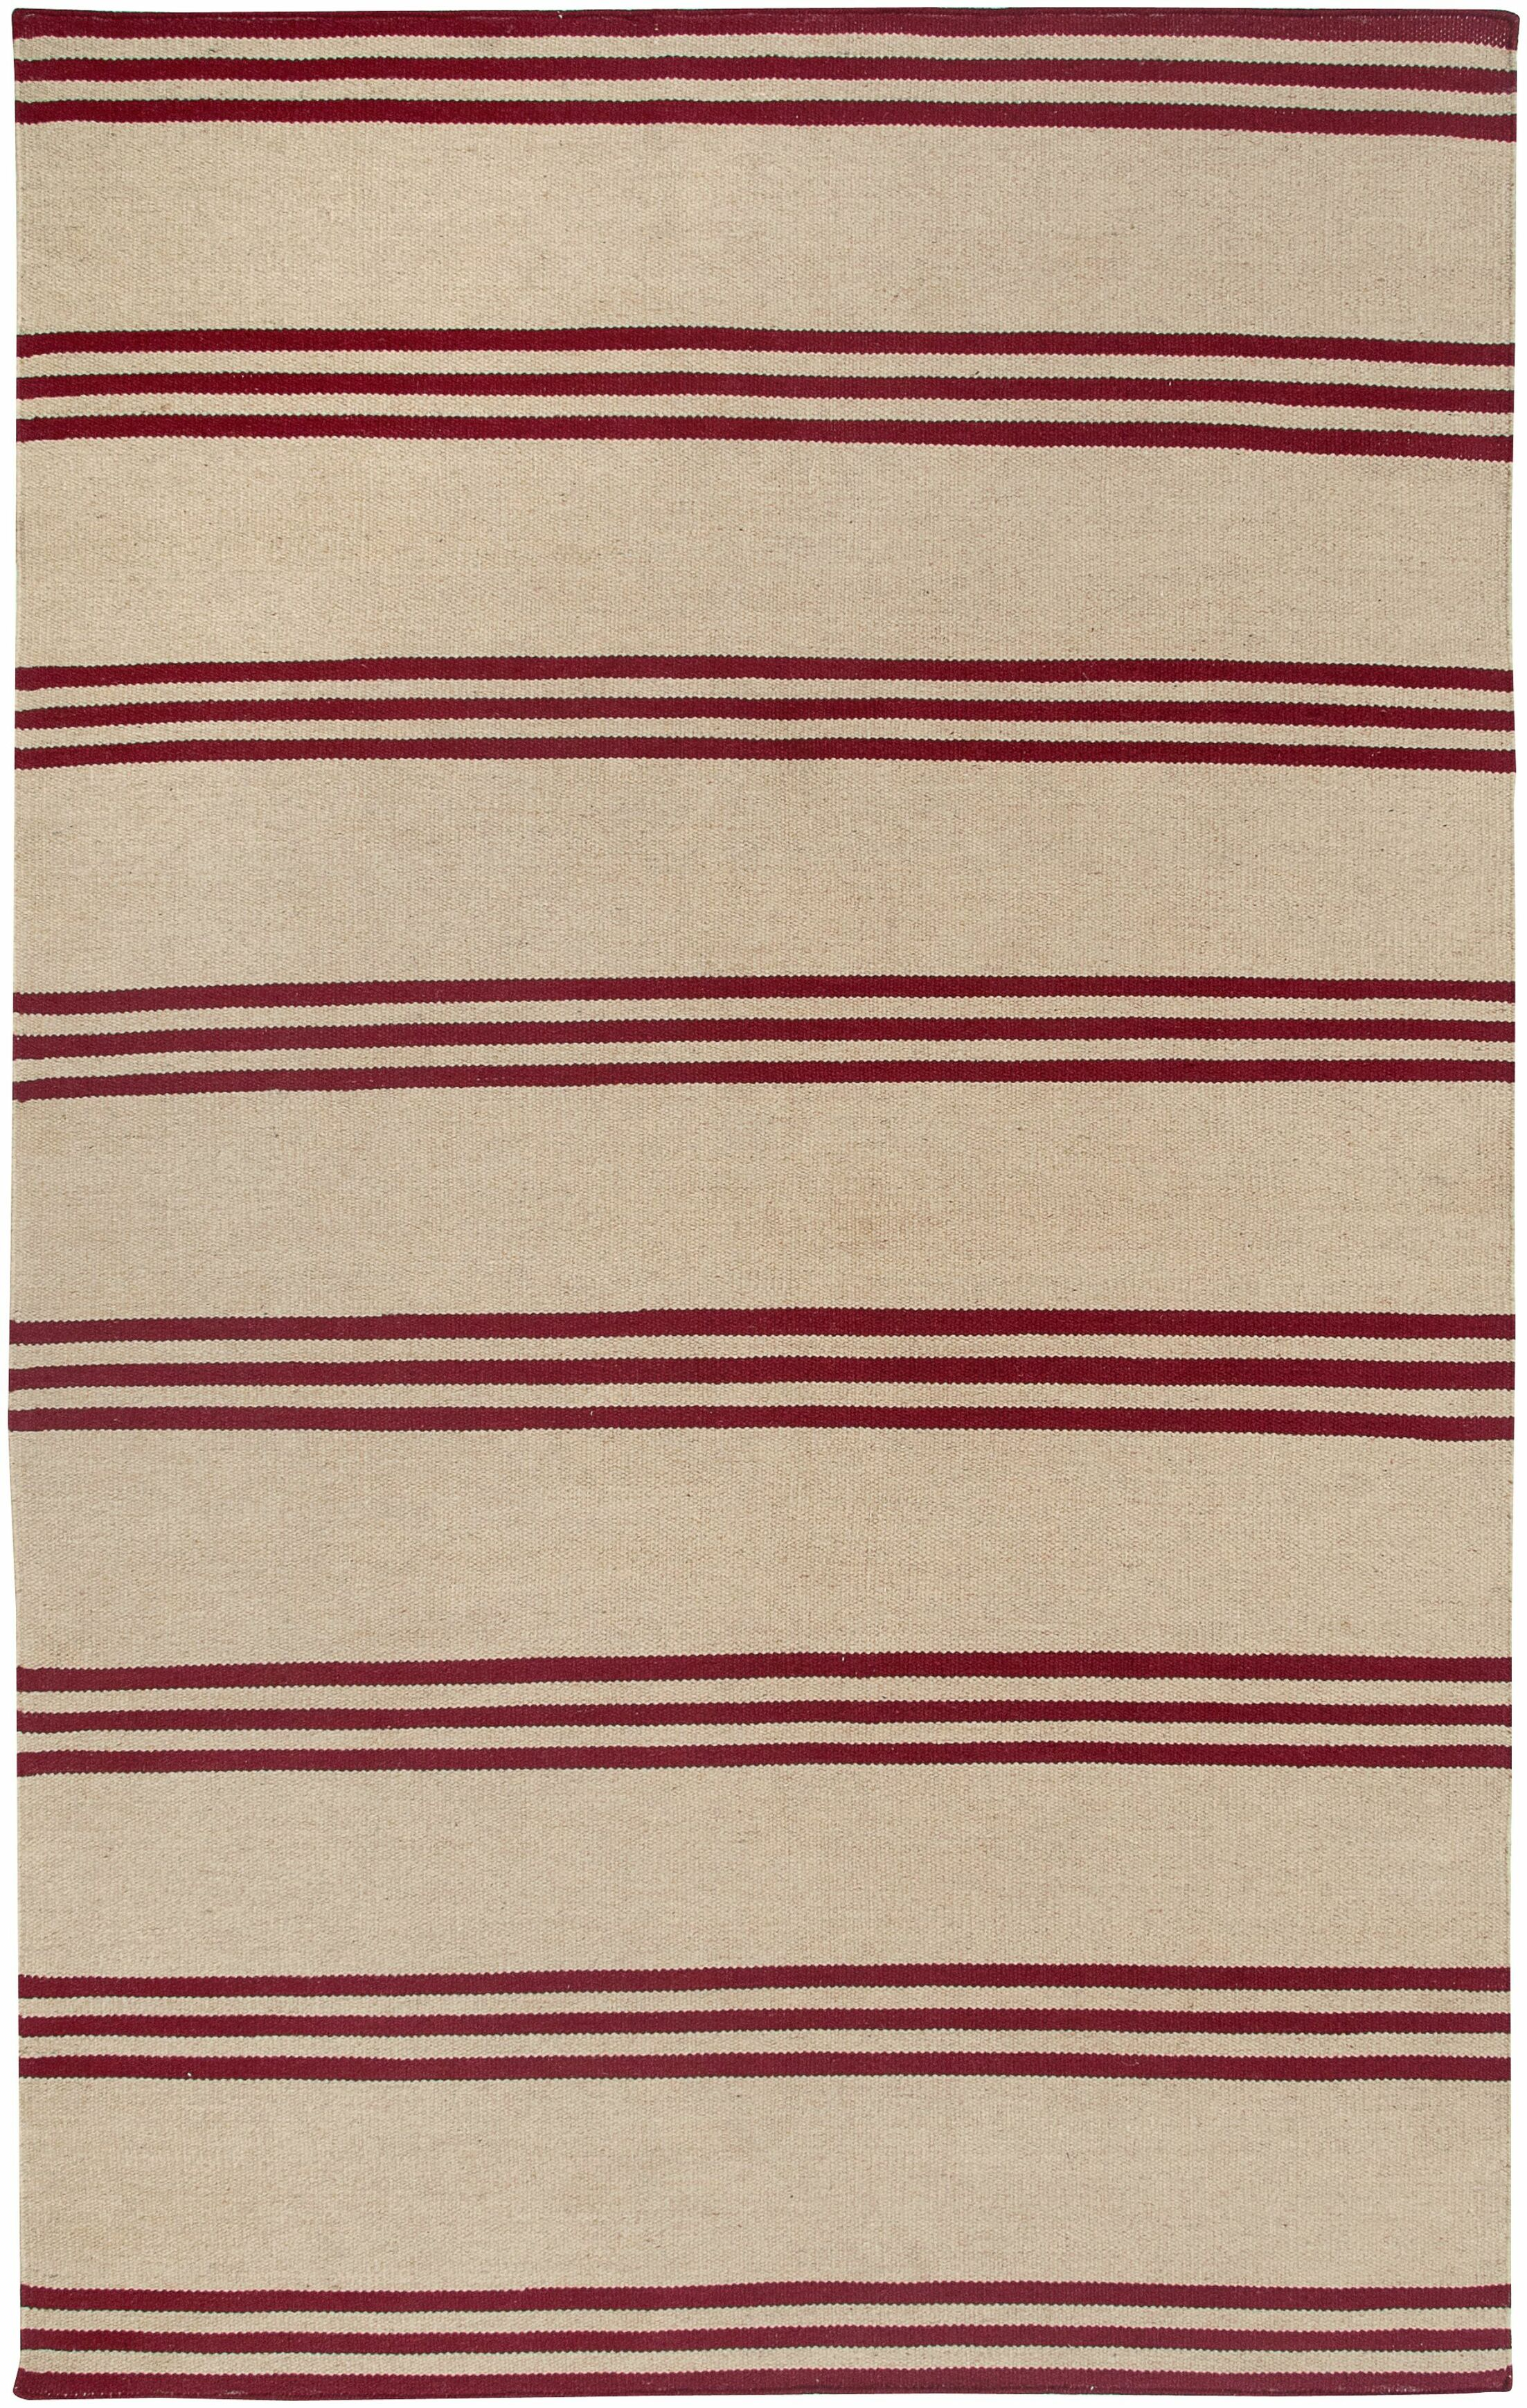 Hand-Woven Red/Beige Area Rug Rug Size: Rectangle 8' x 10'